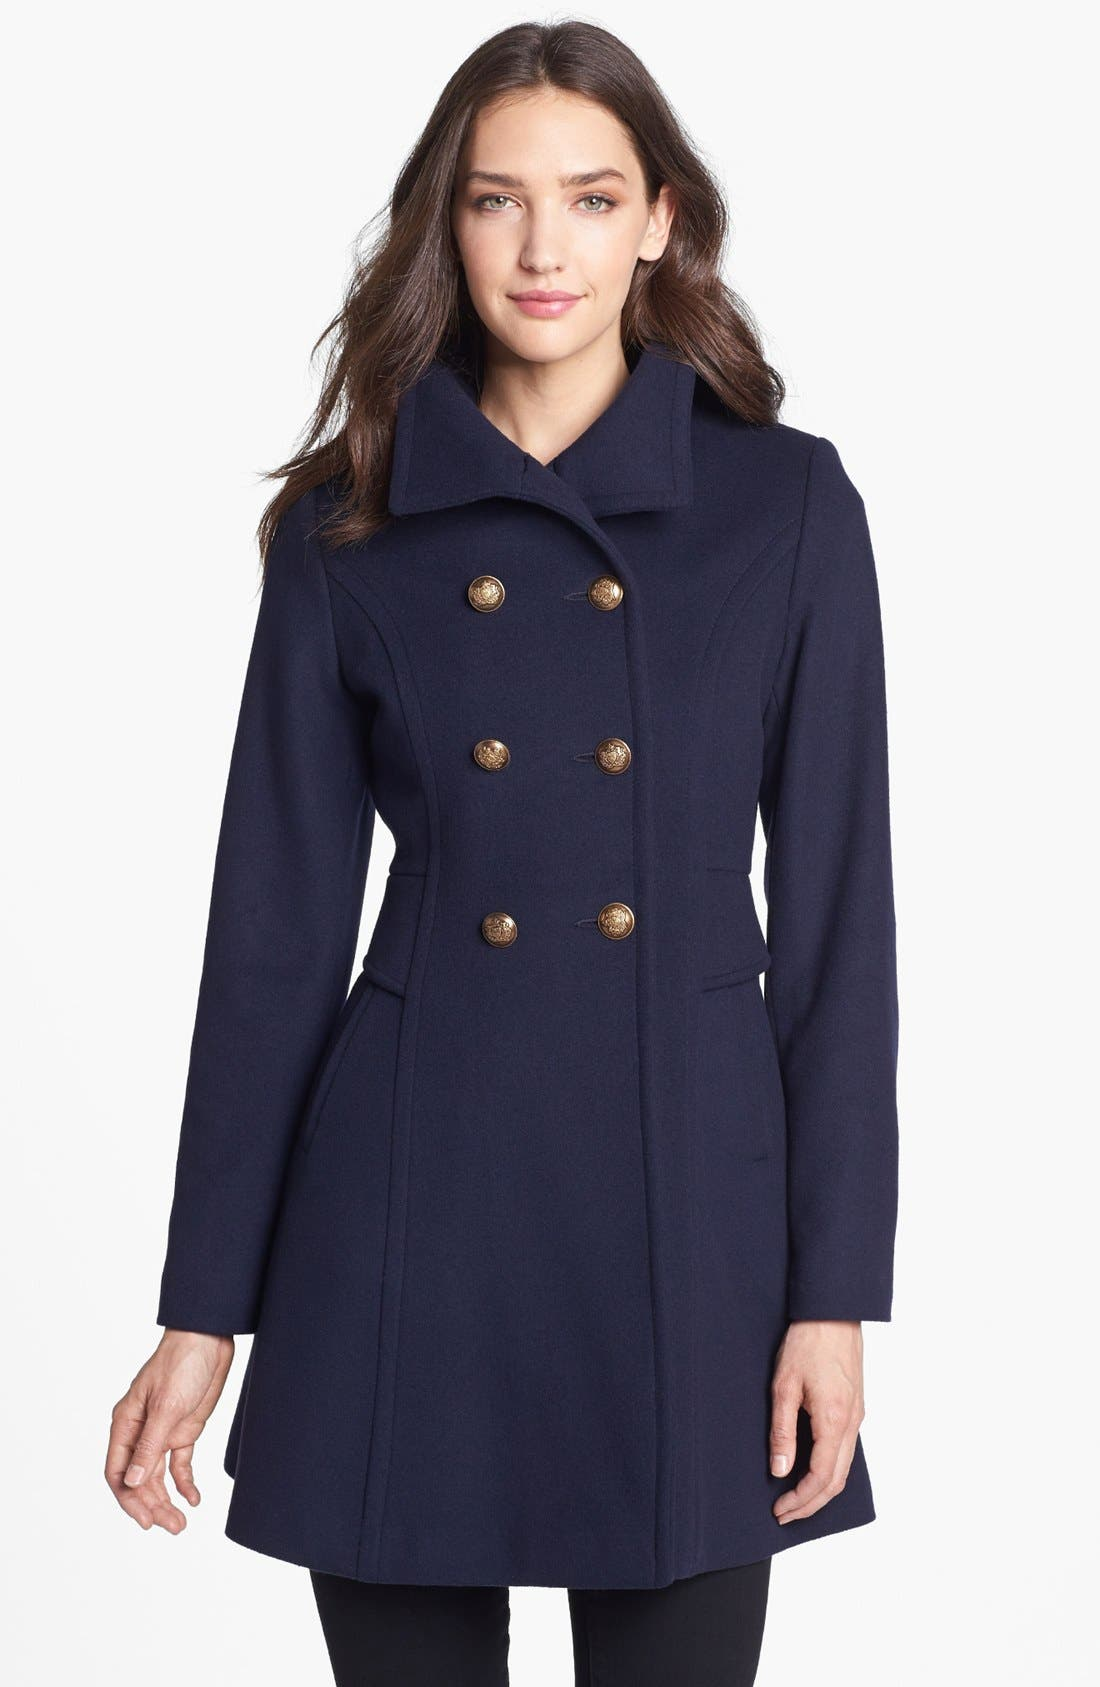 Alternate Image 1 Selected - Trina Turk Lambswool & Cashmere Officer's Coat (Petite)